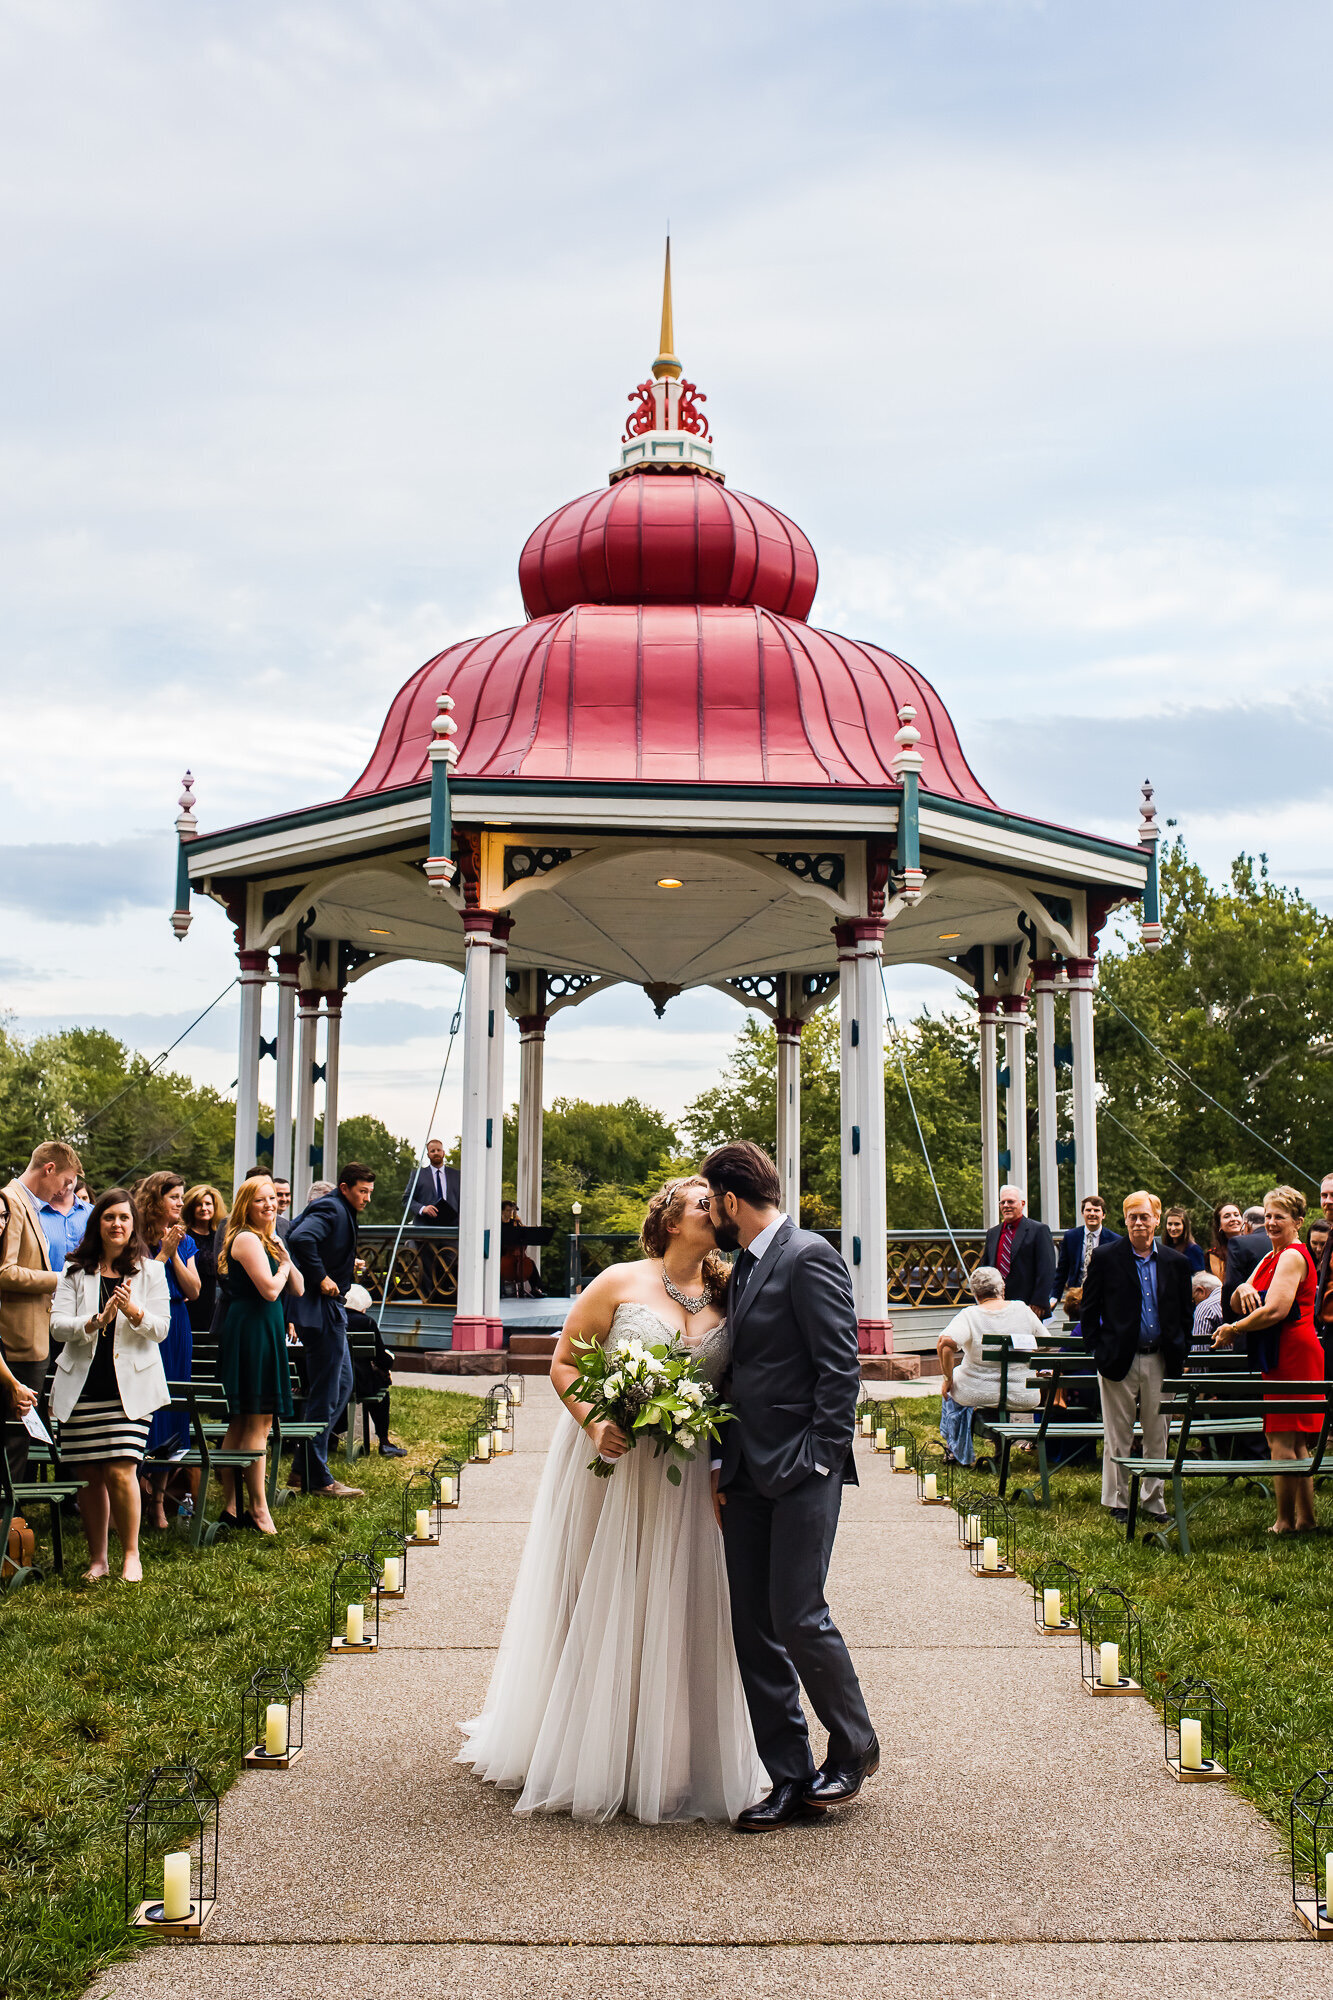 Bride and groom kiss as they walk back down the aisle after getting married in Tower Grove Park at The Music Stand